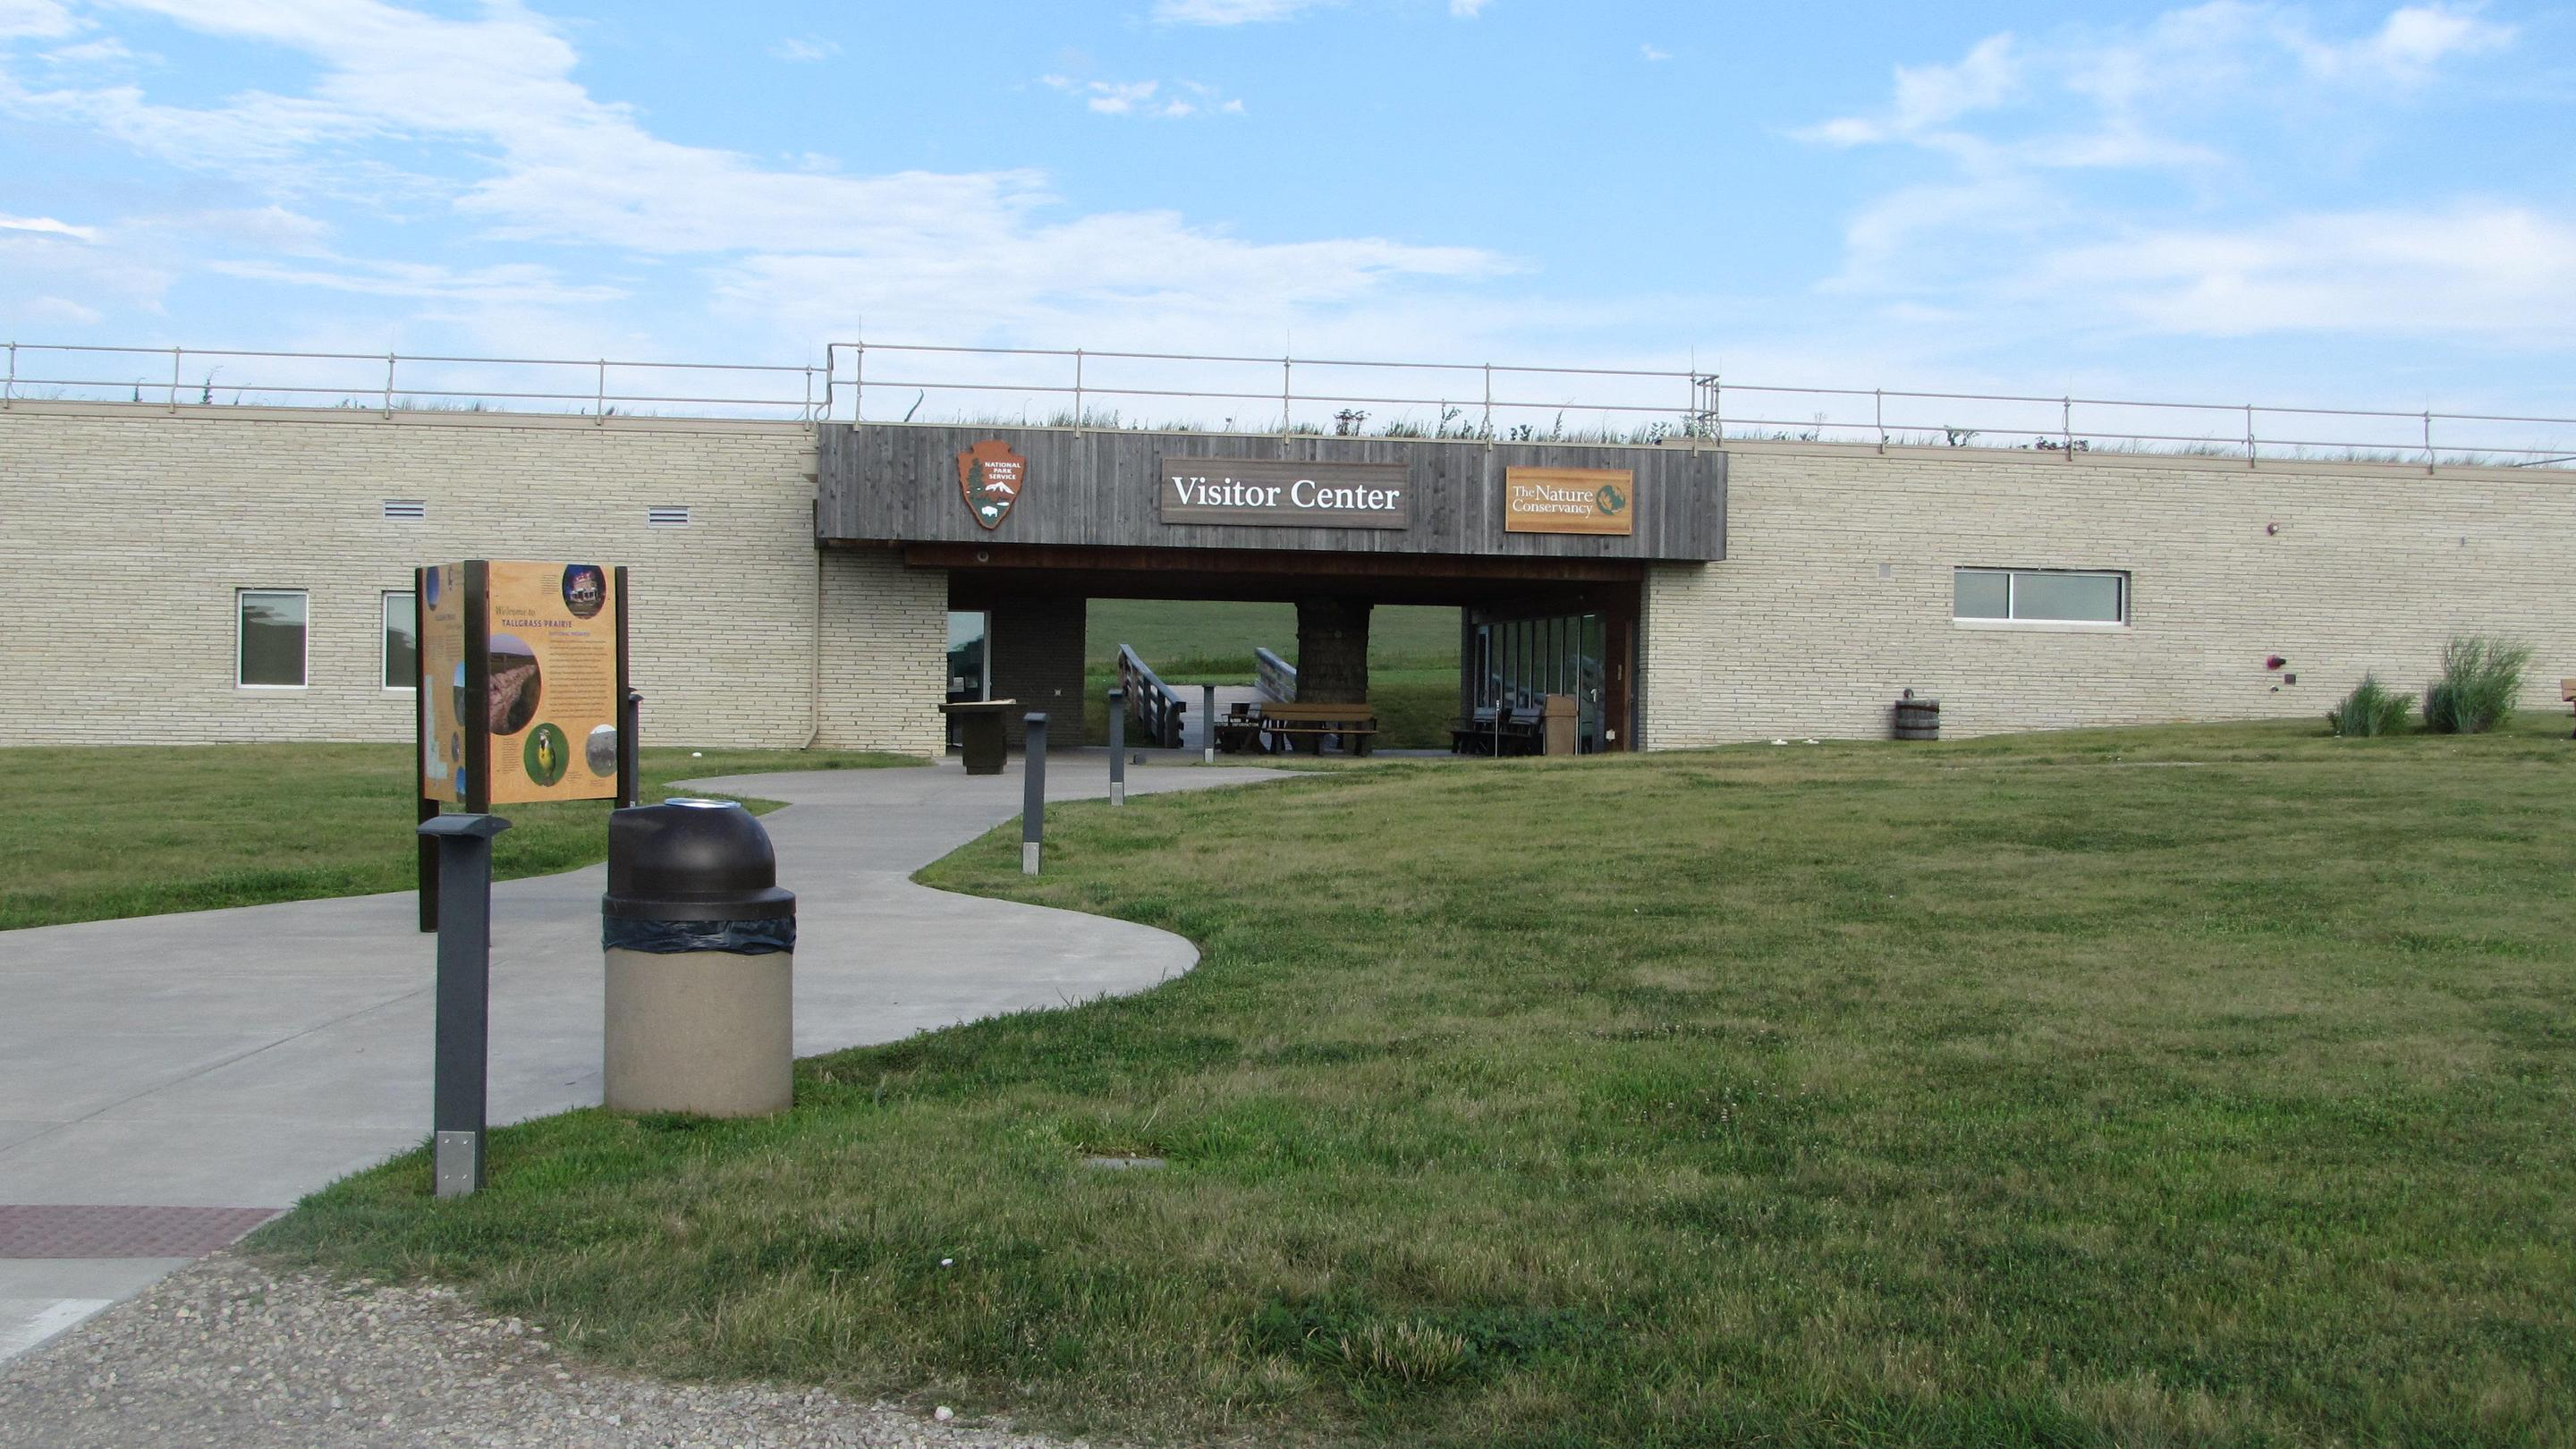 Visitor CenterThe Visitor Center provides exhibits of fun facts and gifts to remember the experience.